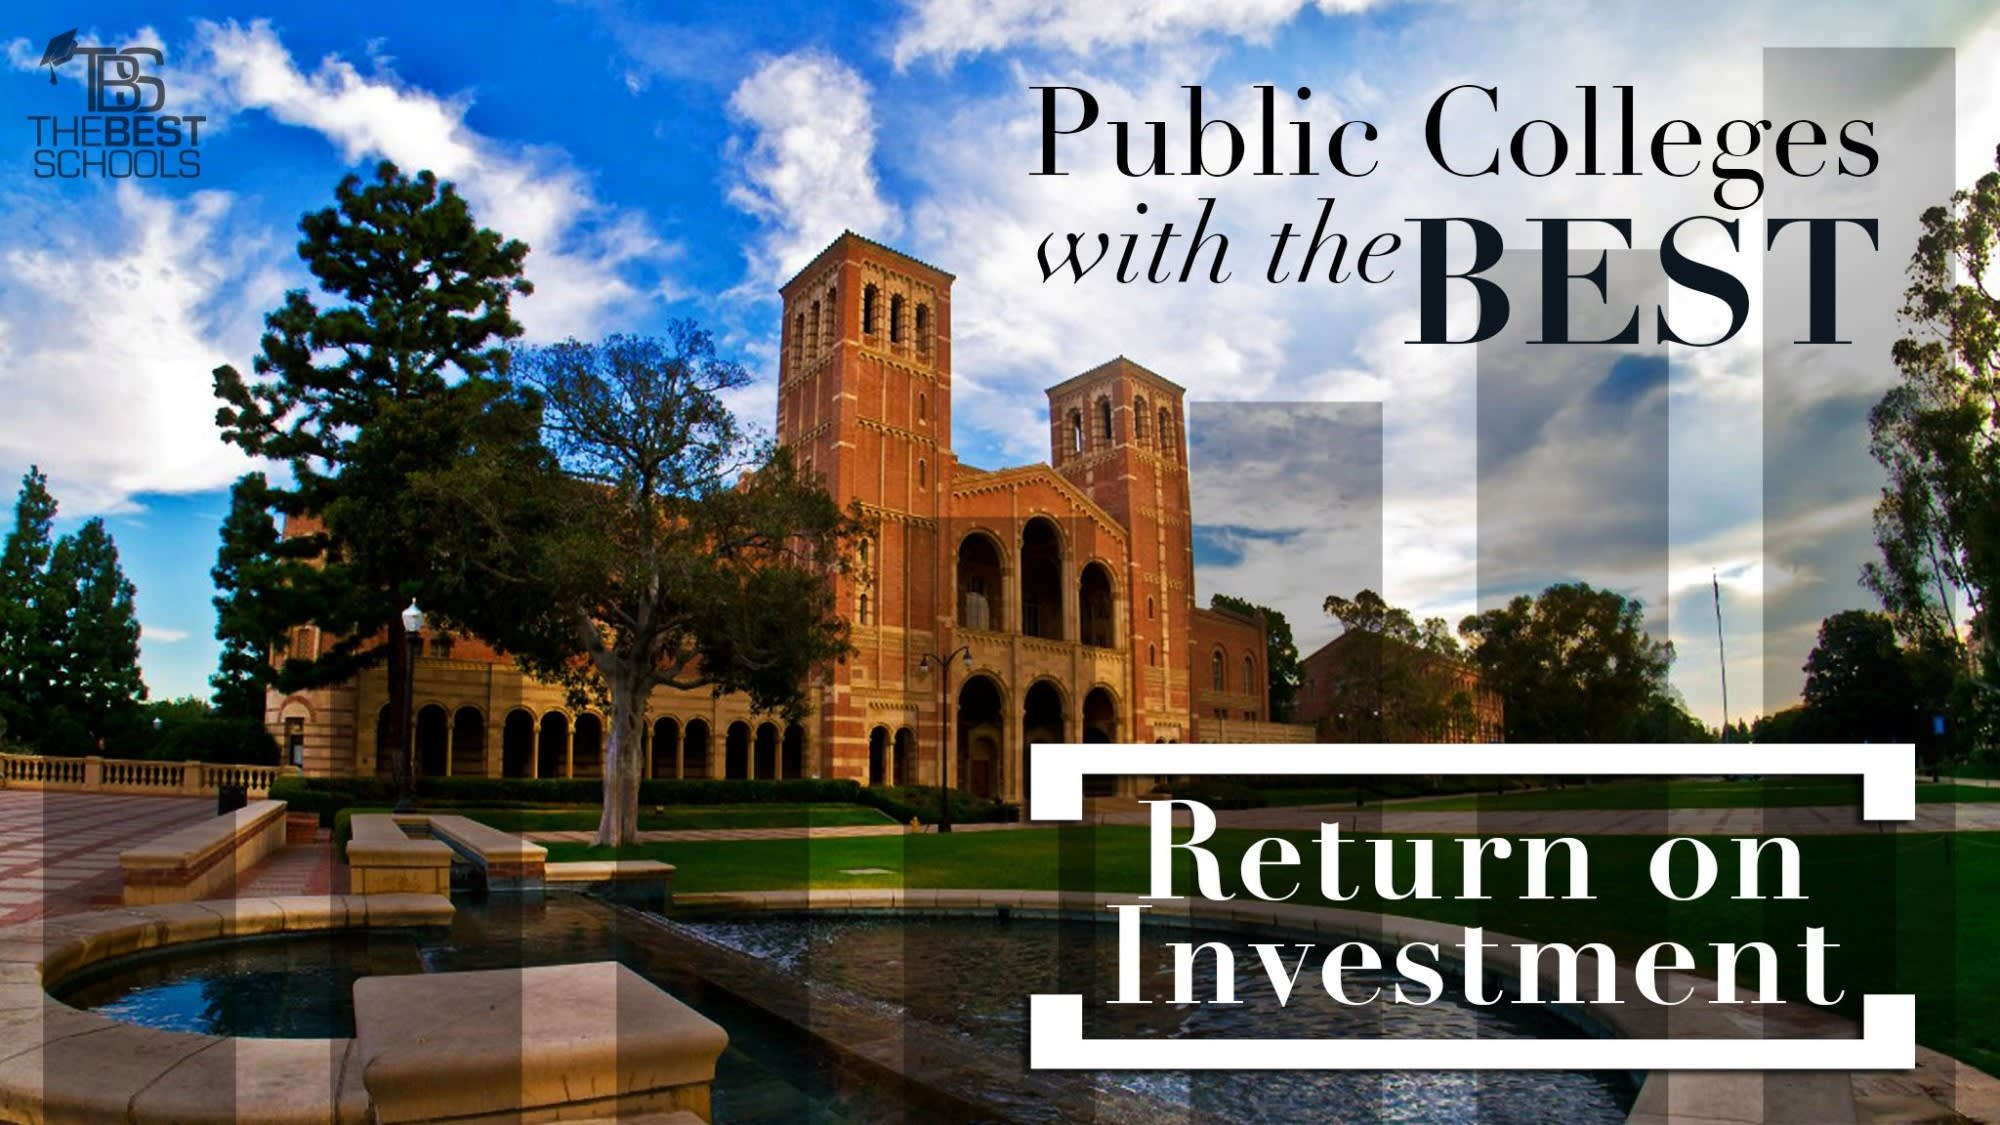 50 Public Colleges with the Best Return on Investment